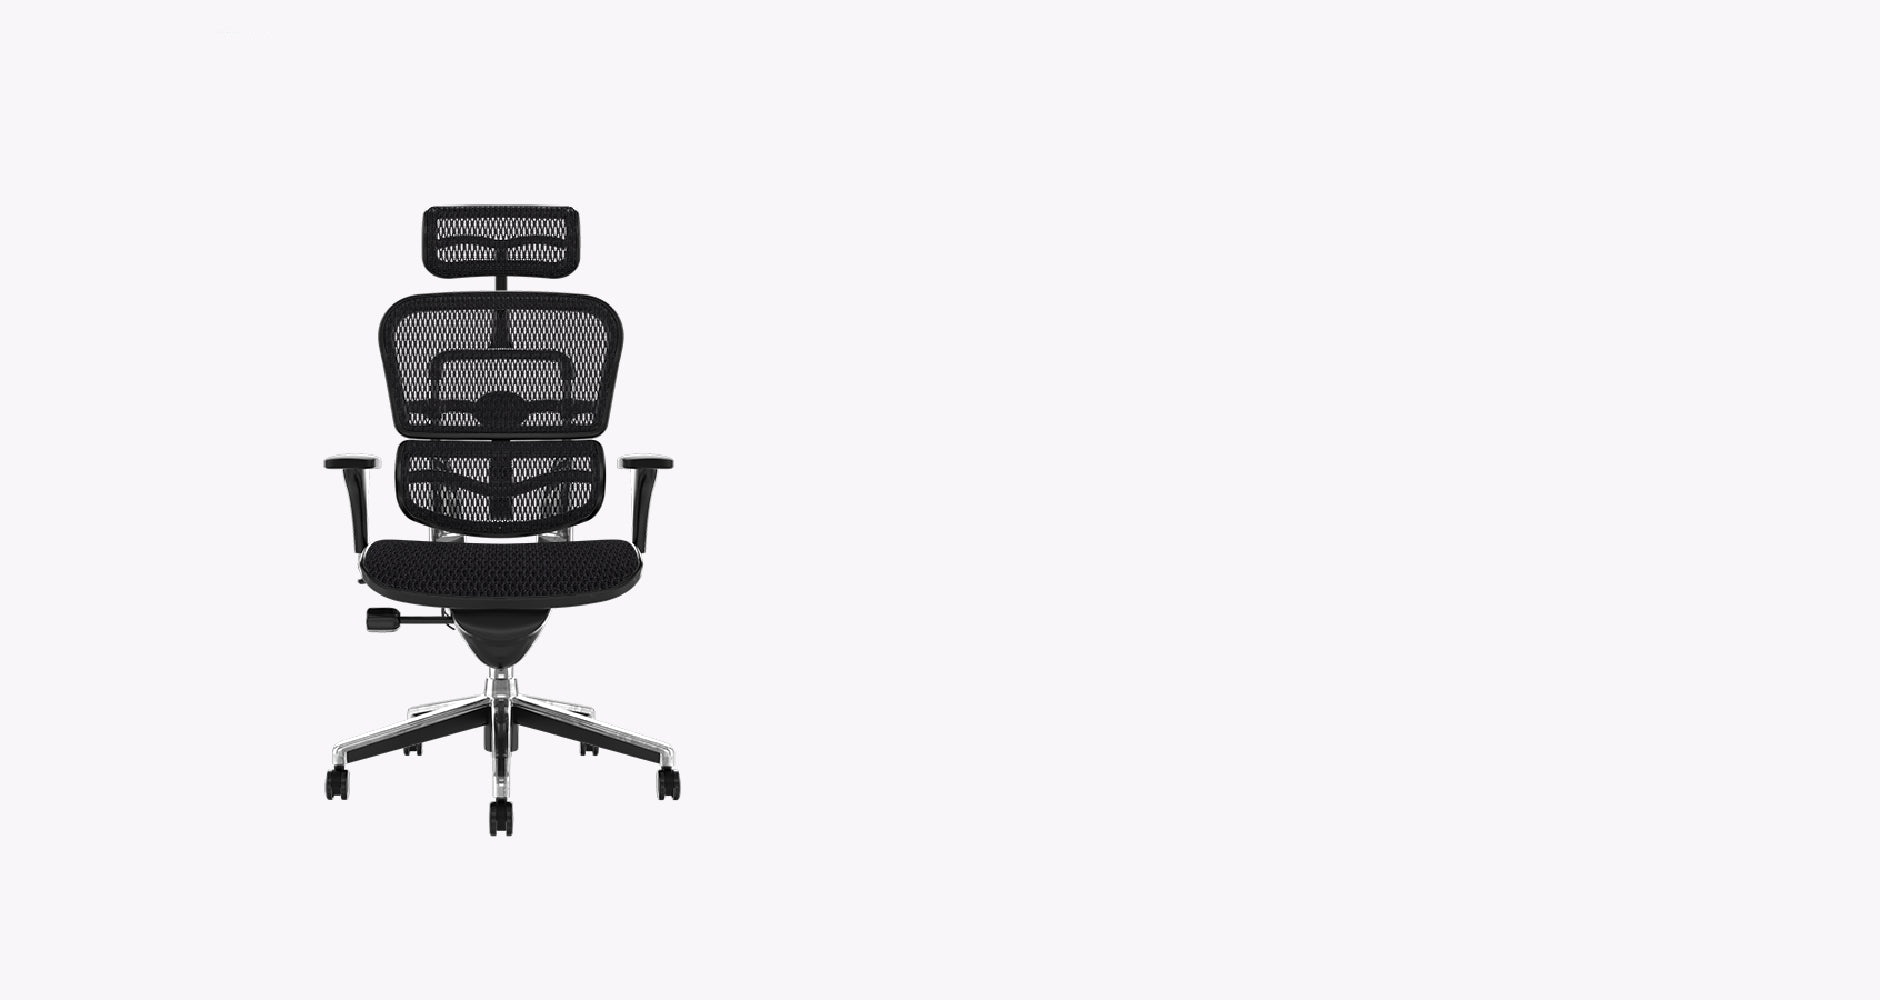 Ergohuman Classic Singapore Ergonomic Chair Office Chair